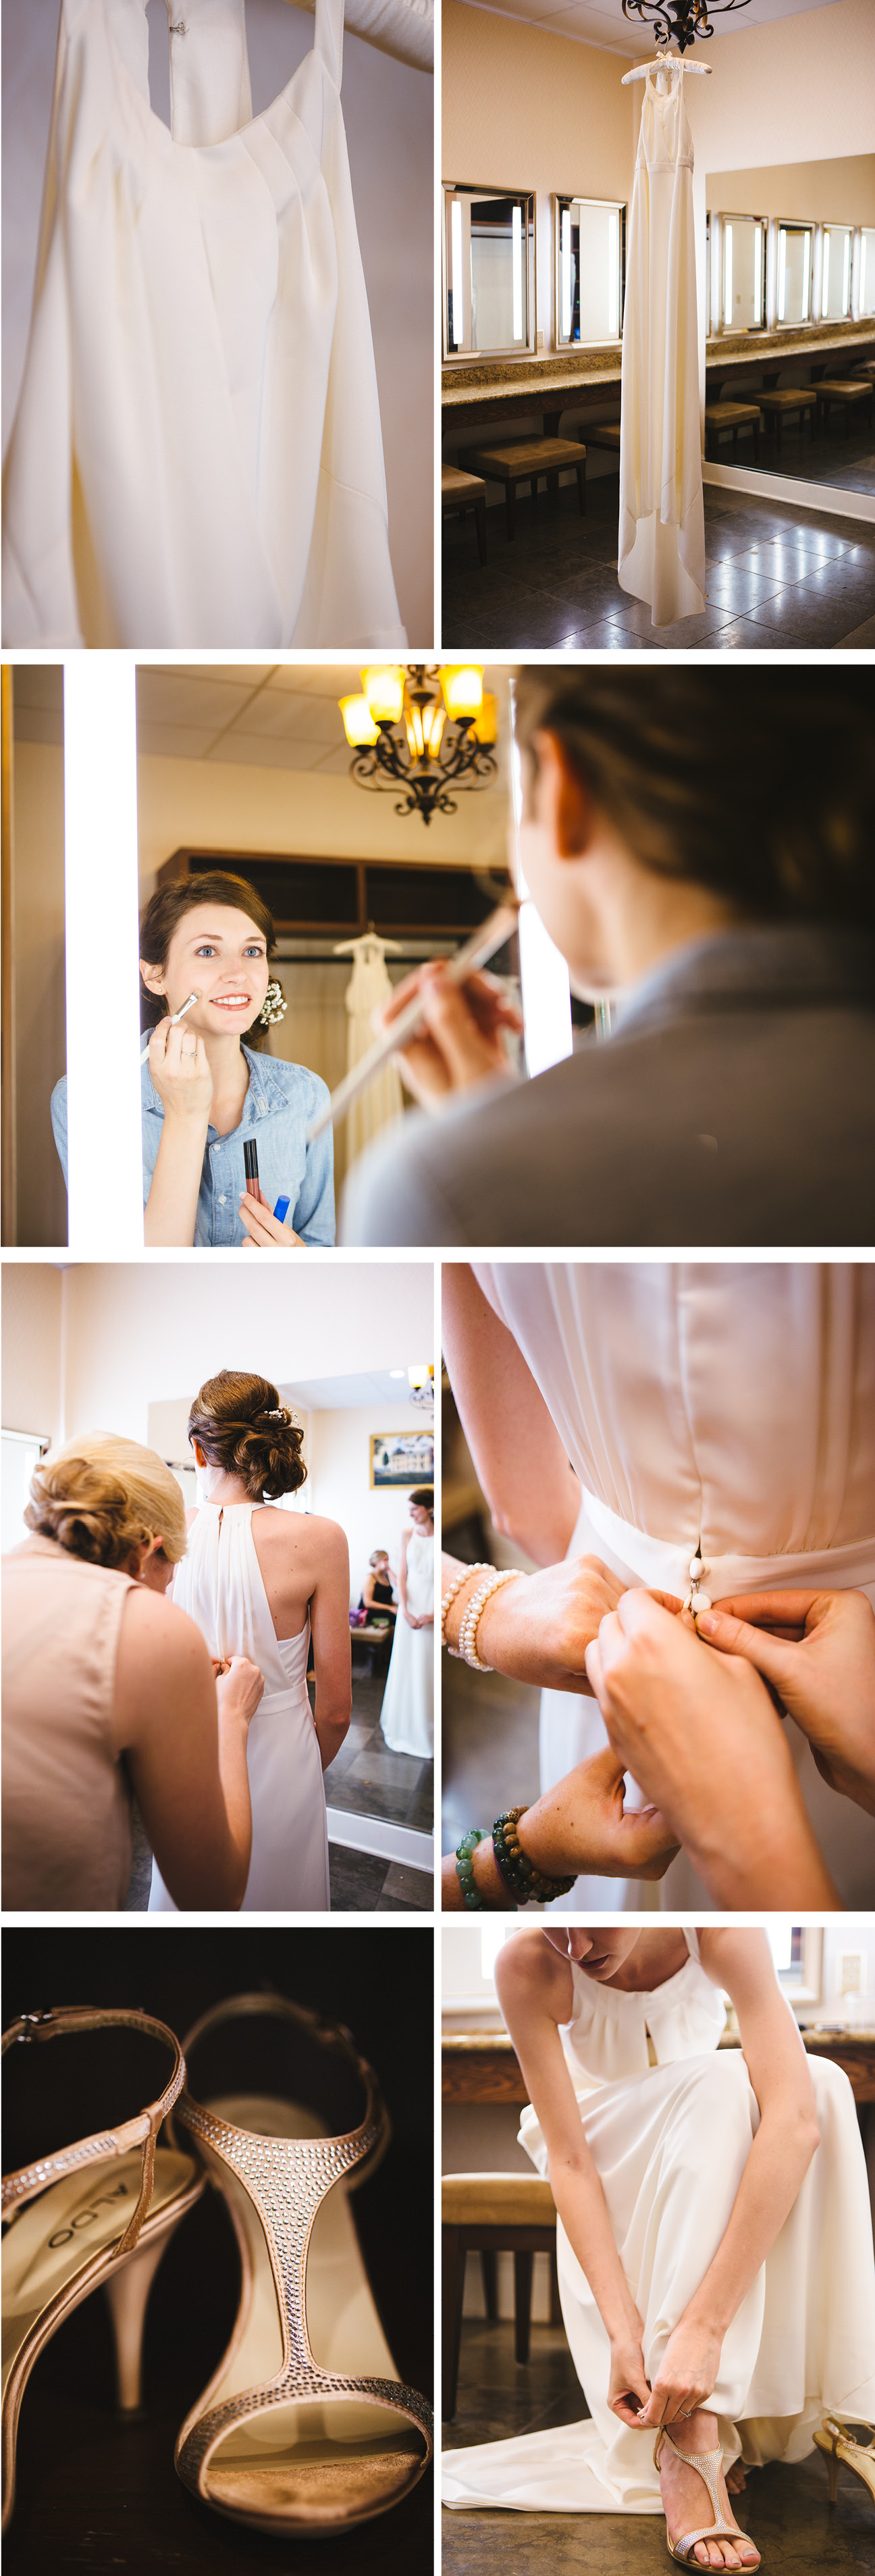 CK-Photo-Nashville-Wedding-Photographer-TN2.jpg